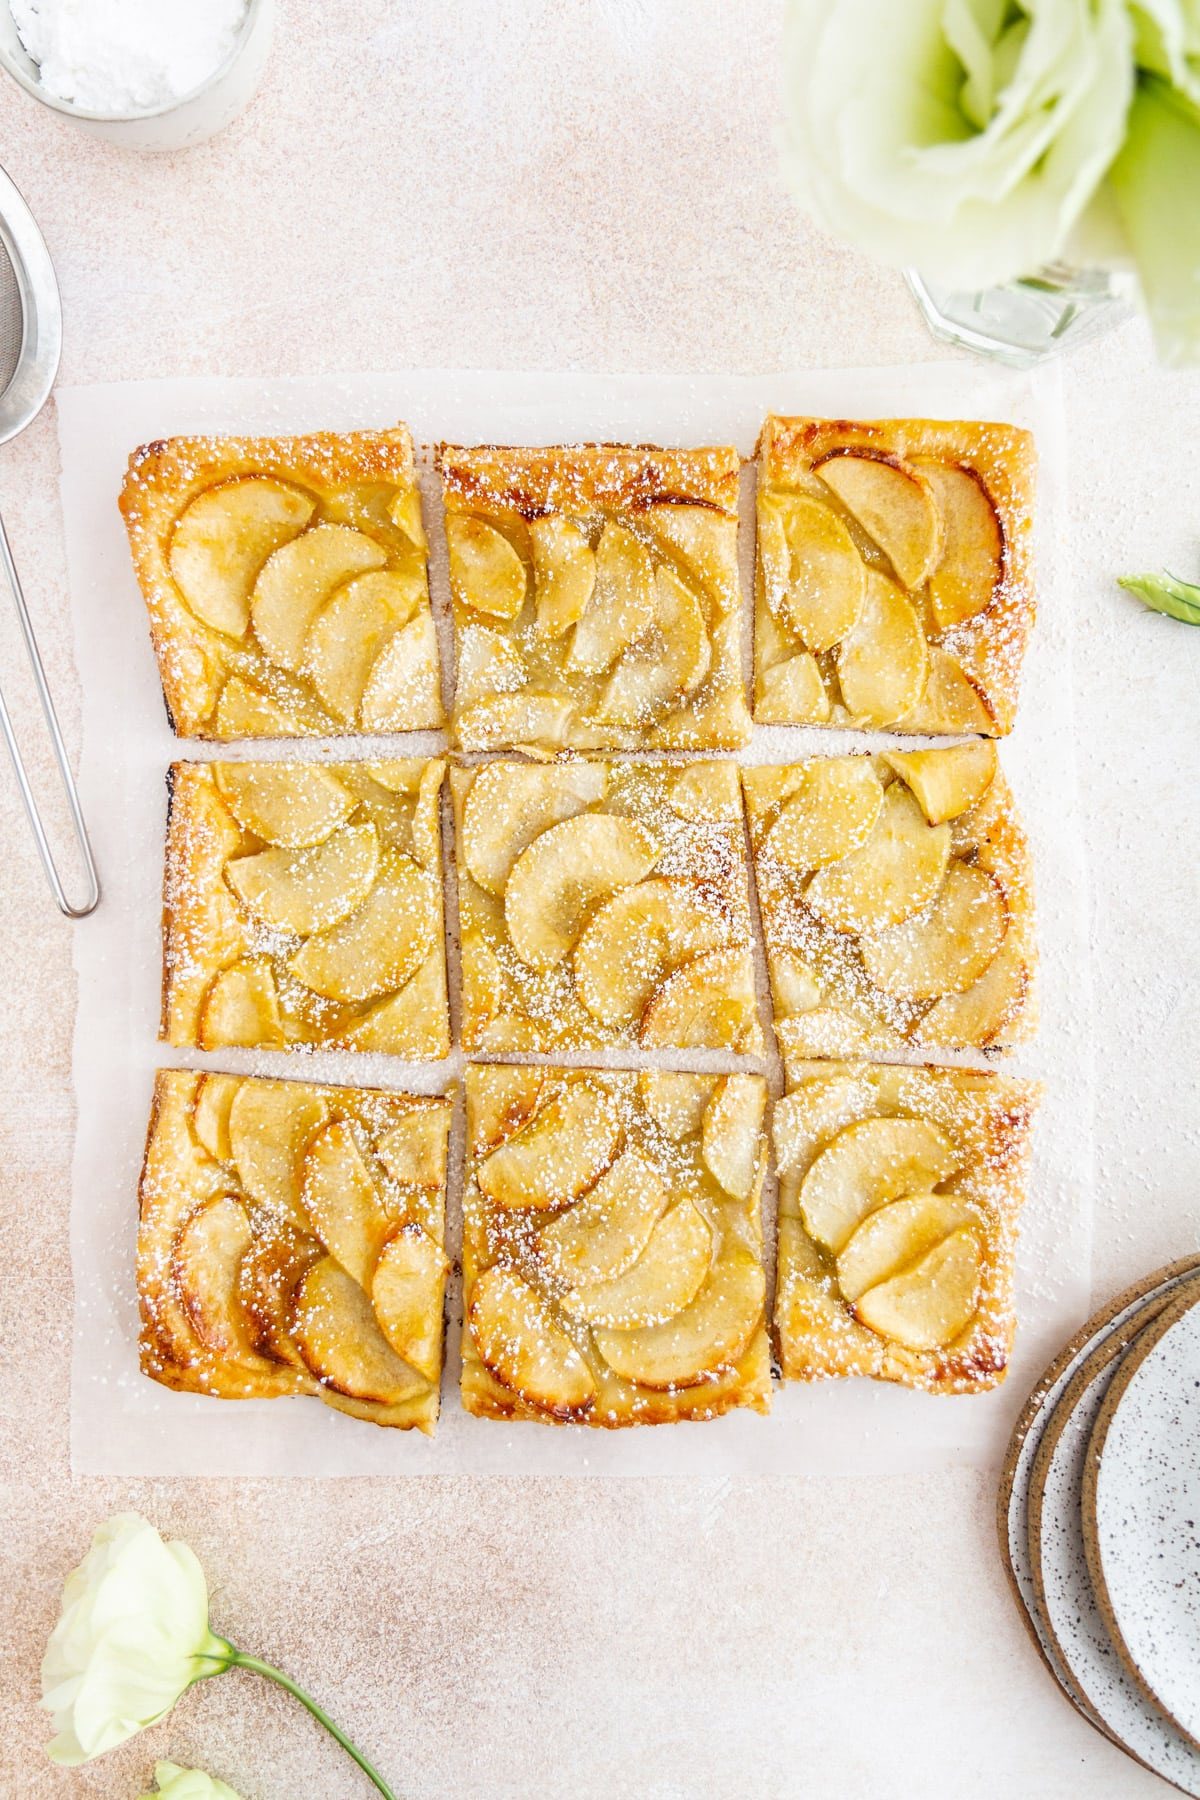 French apple tart cut up on a surface